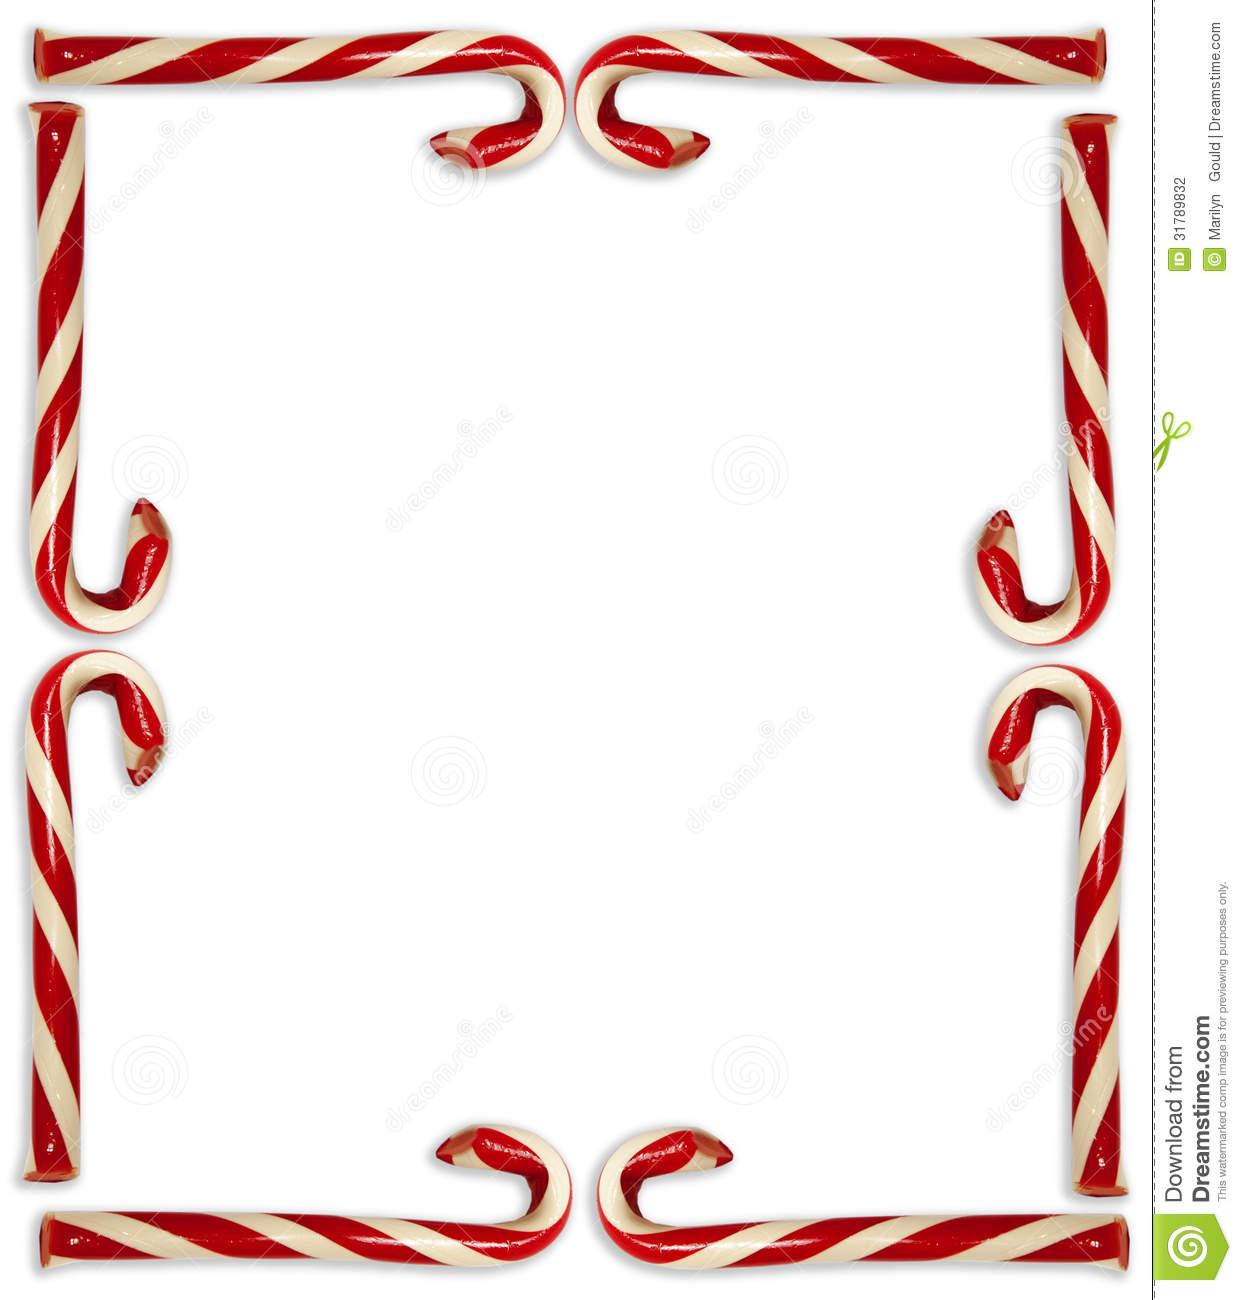 Candy Cane Border Stock Photo Image Of Frame Gould